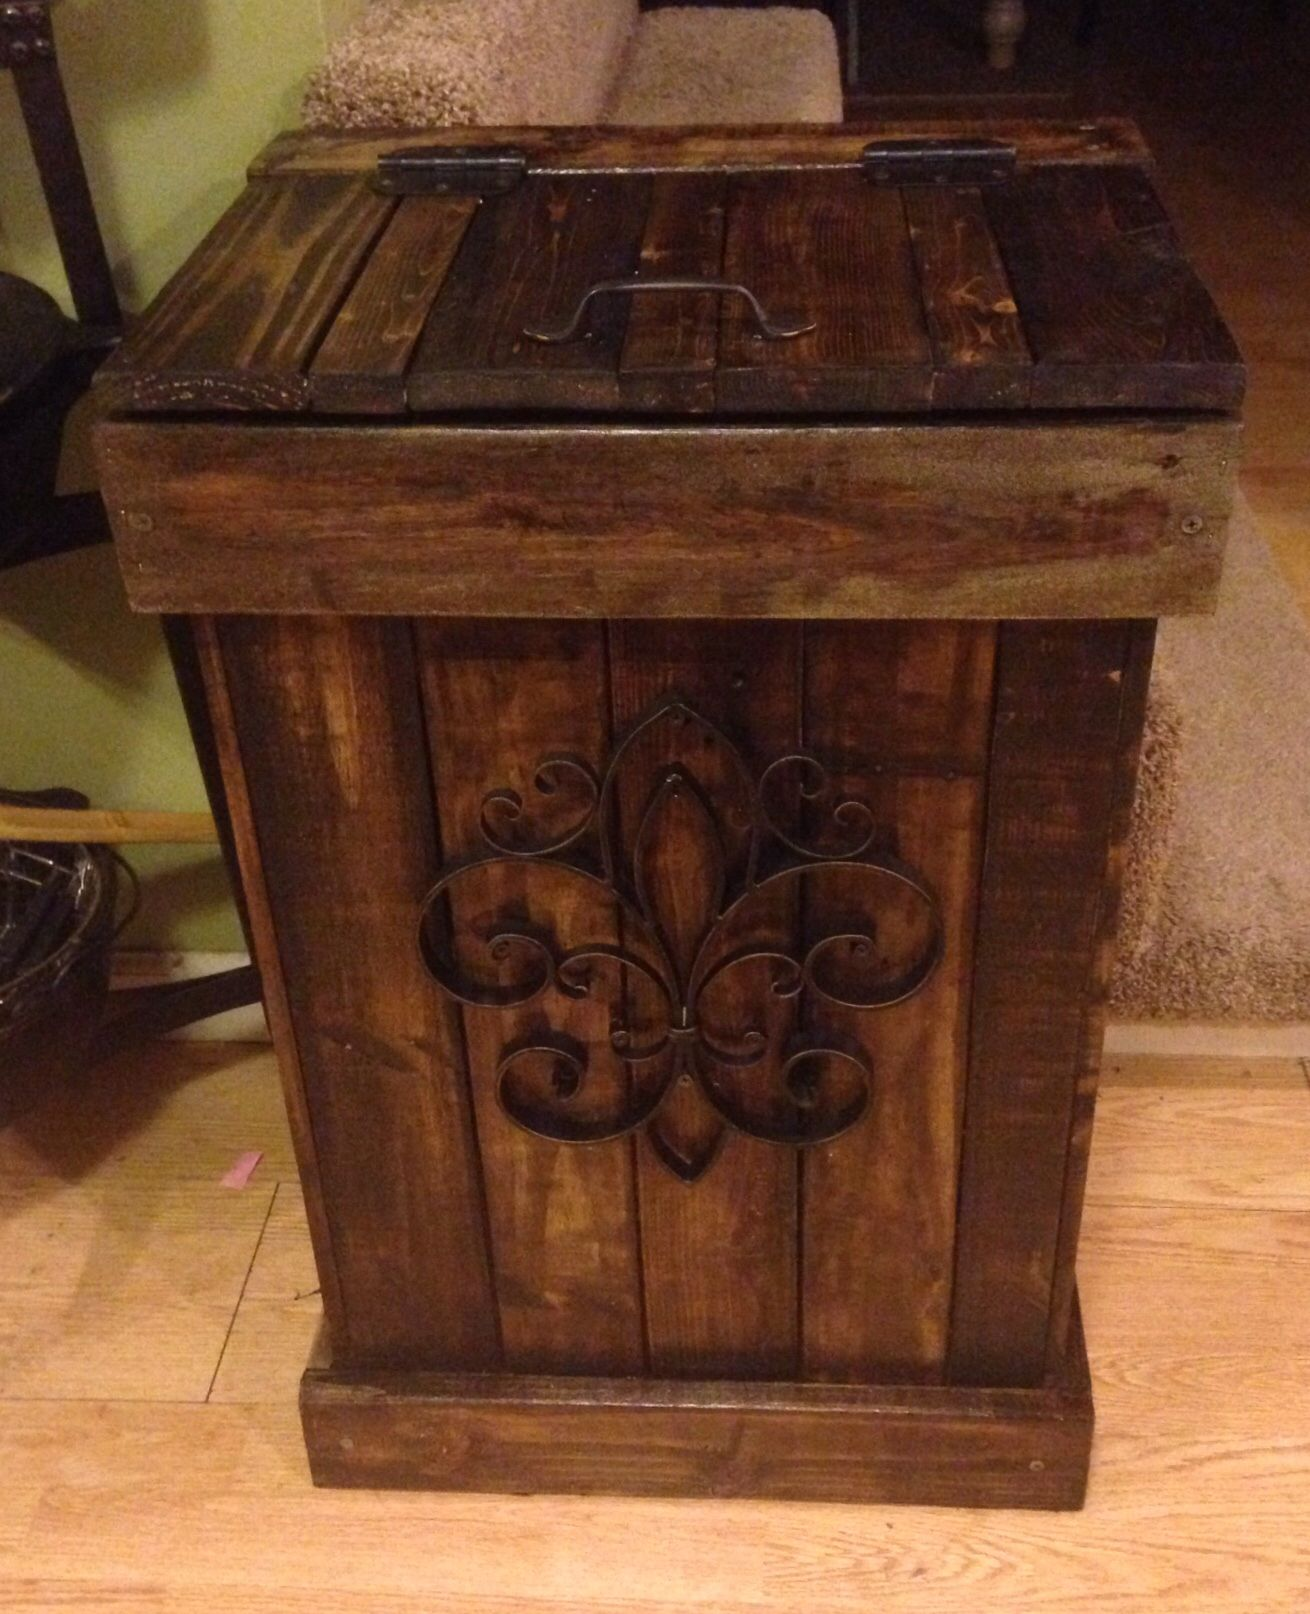 30 Gallon Wooden Trash Can Made From Wooden Pallets Diy